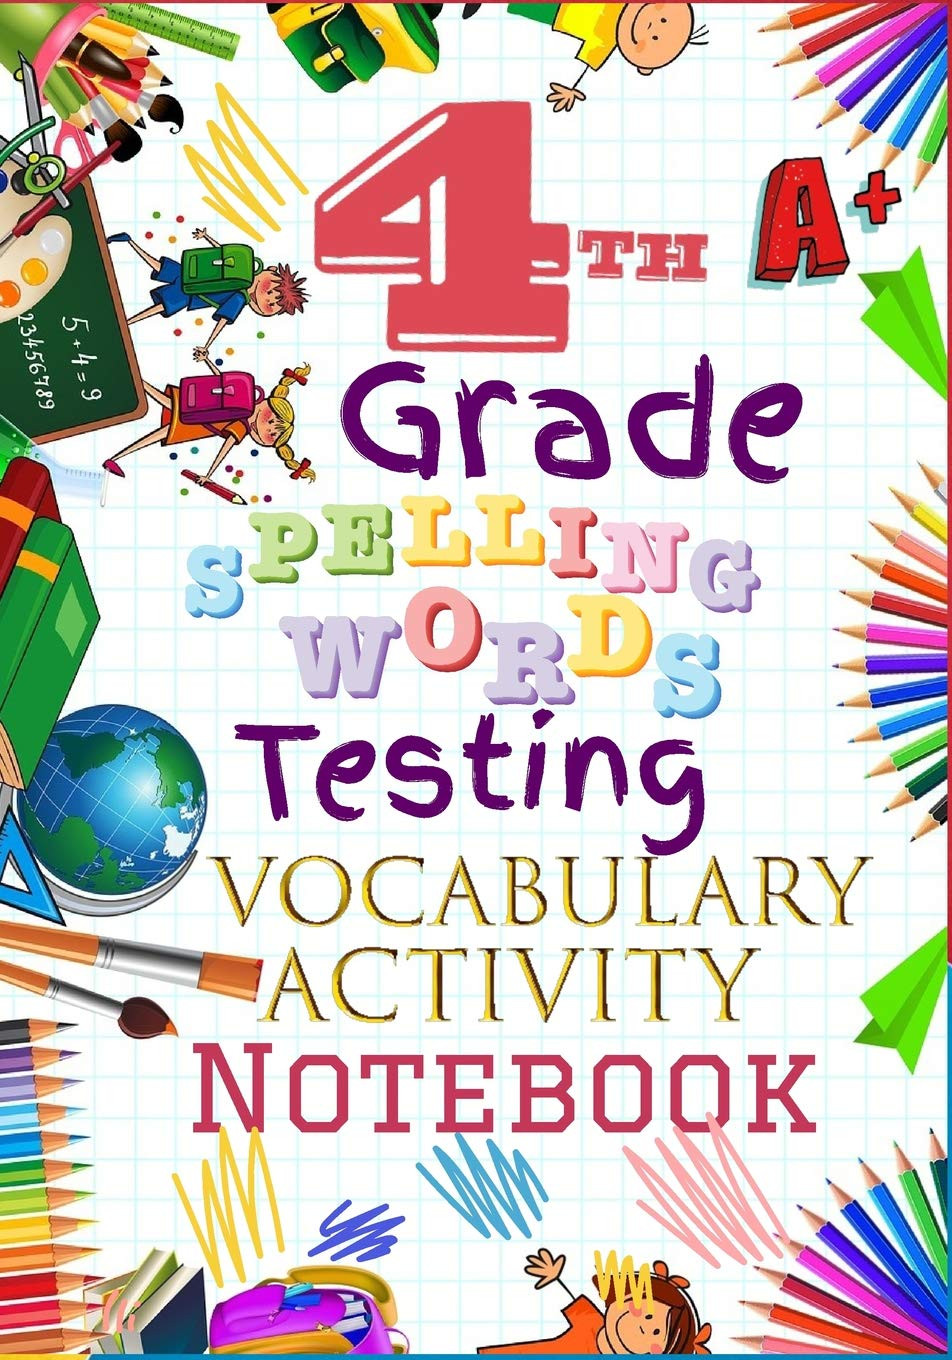 4th Grade Vocabulary Worksheets 4th Grade Spelling Words Testing Vocabulary Activity